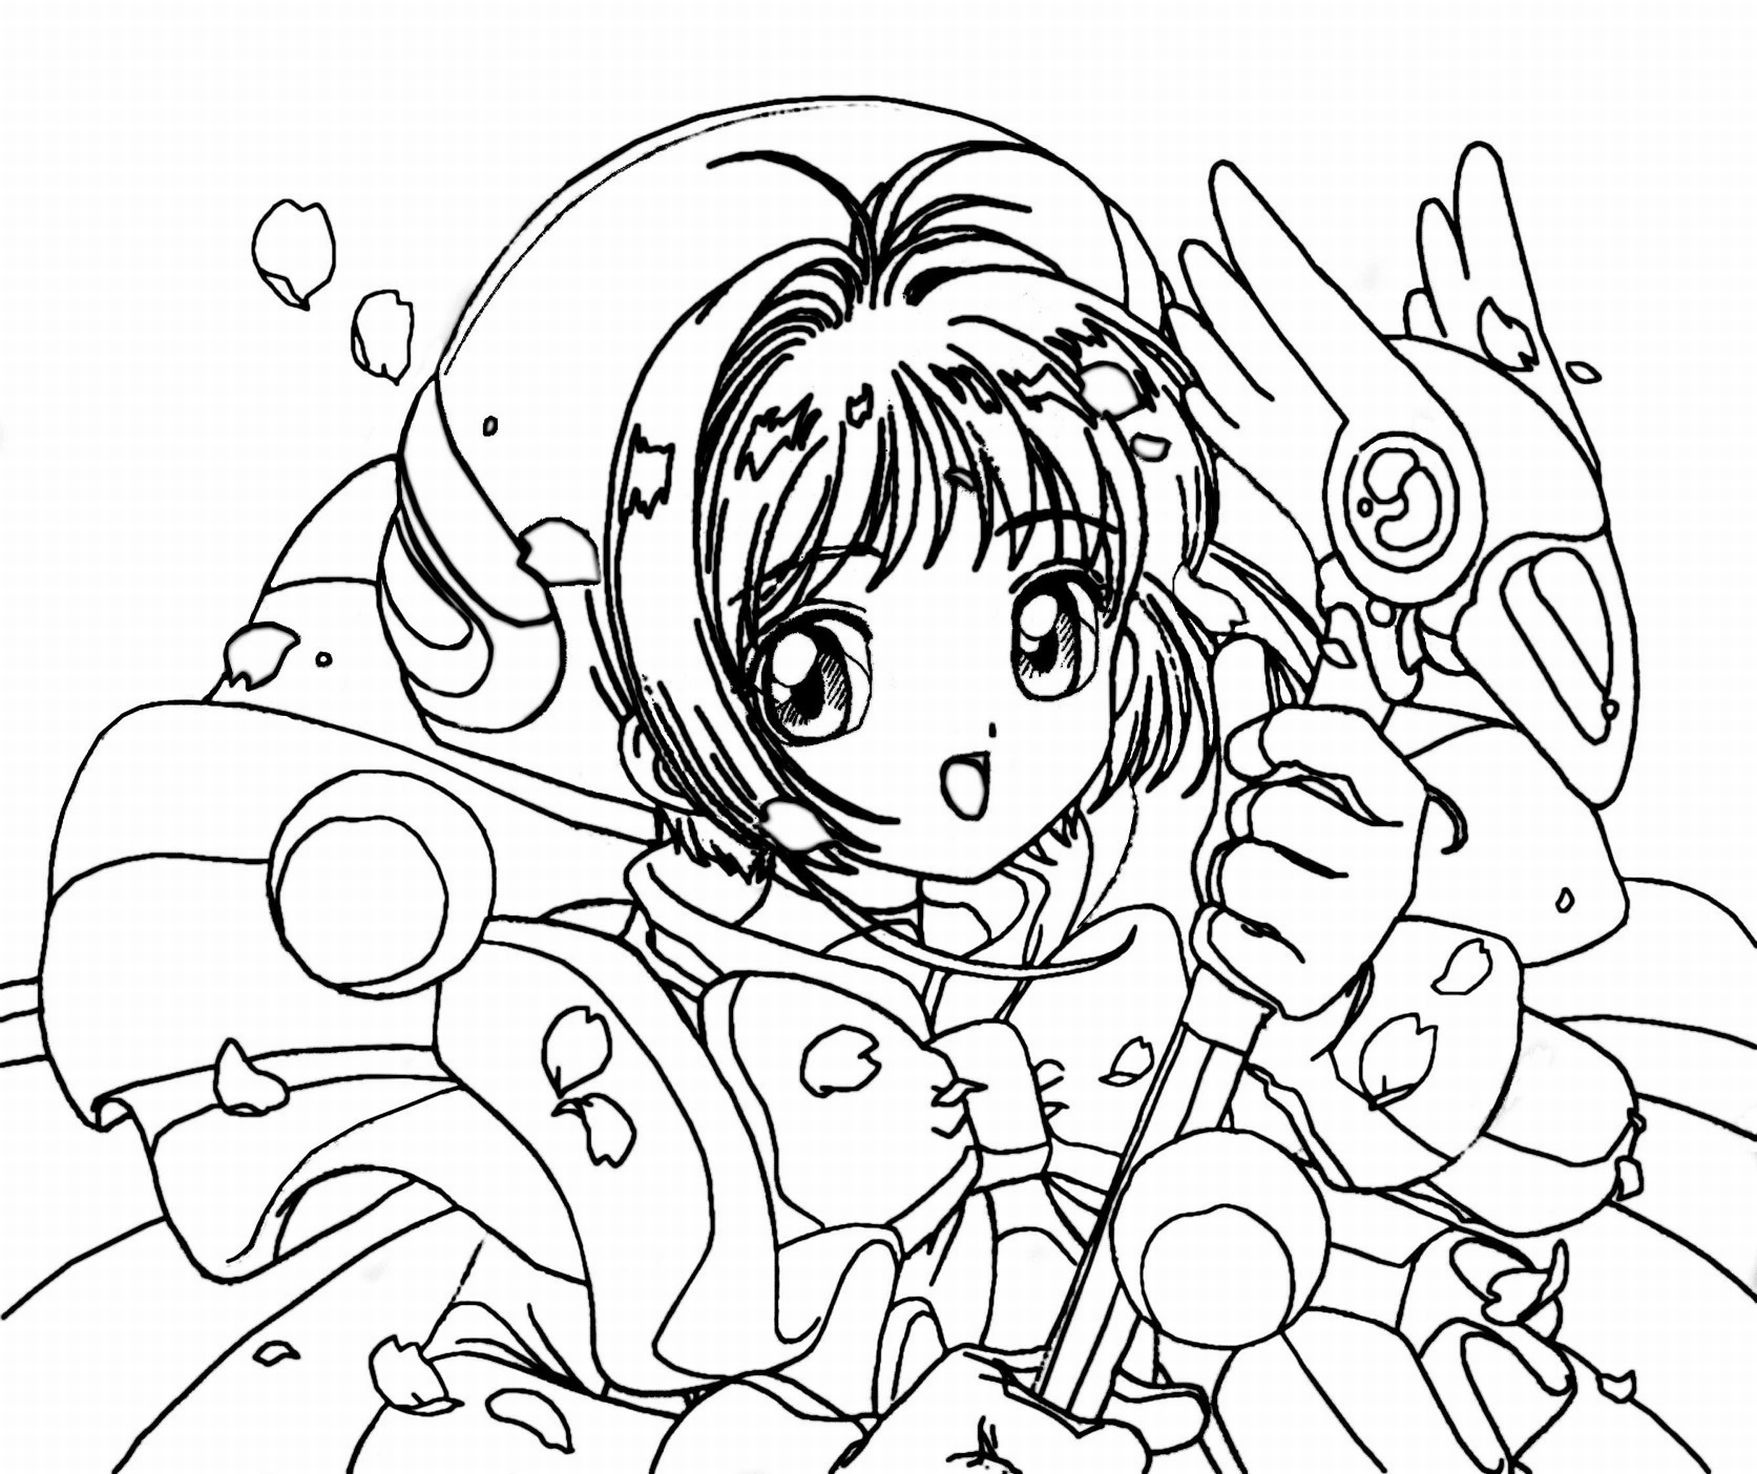 1757x1474 Best Of Kawaii Manga Anime Coloring Pages Womanmate Free